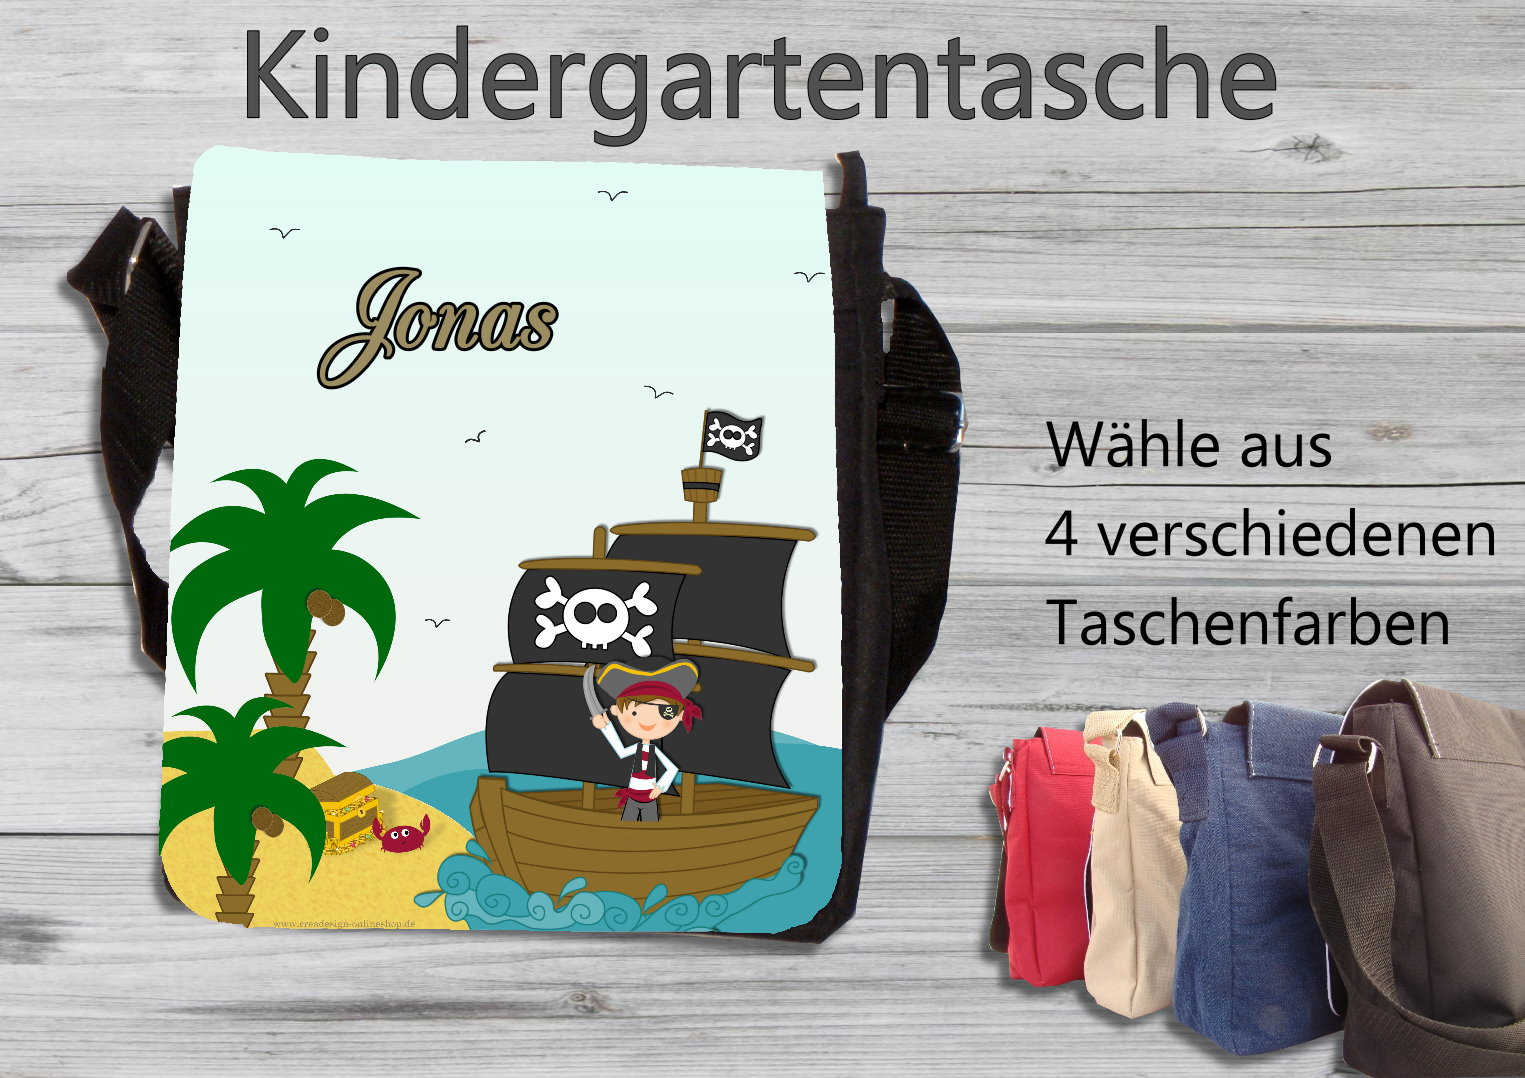 kindergartentasche pirat taschen mit namen personalisiertes nuggiketteli. Black Bedroom Furniture Sets. Home Design Ideas